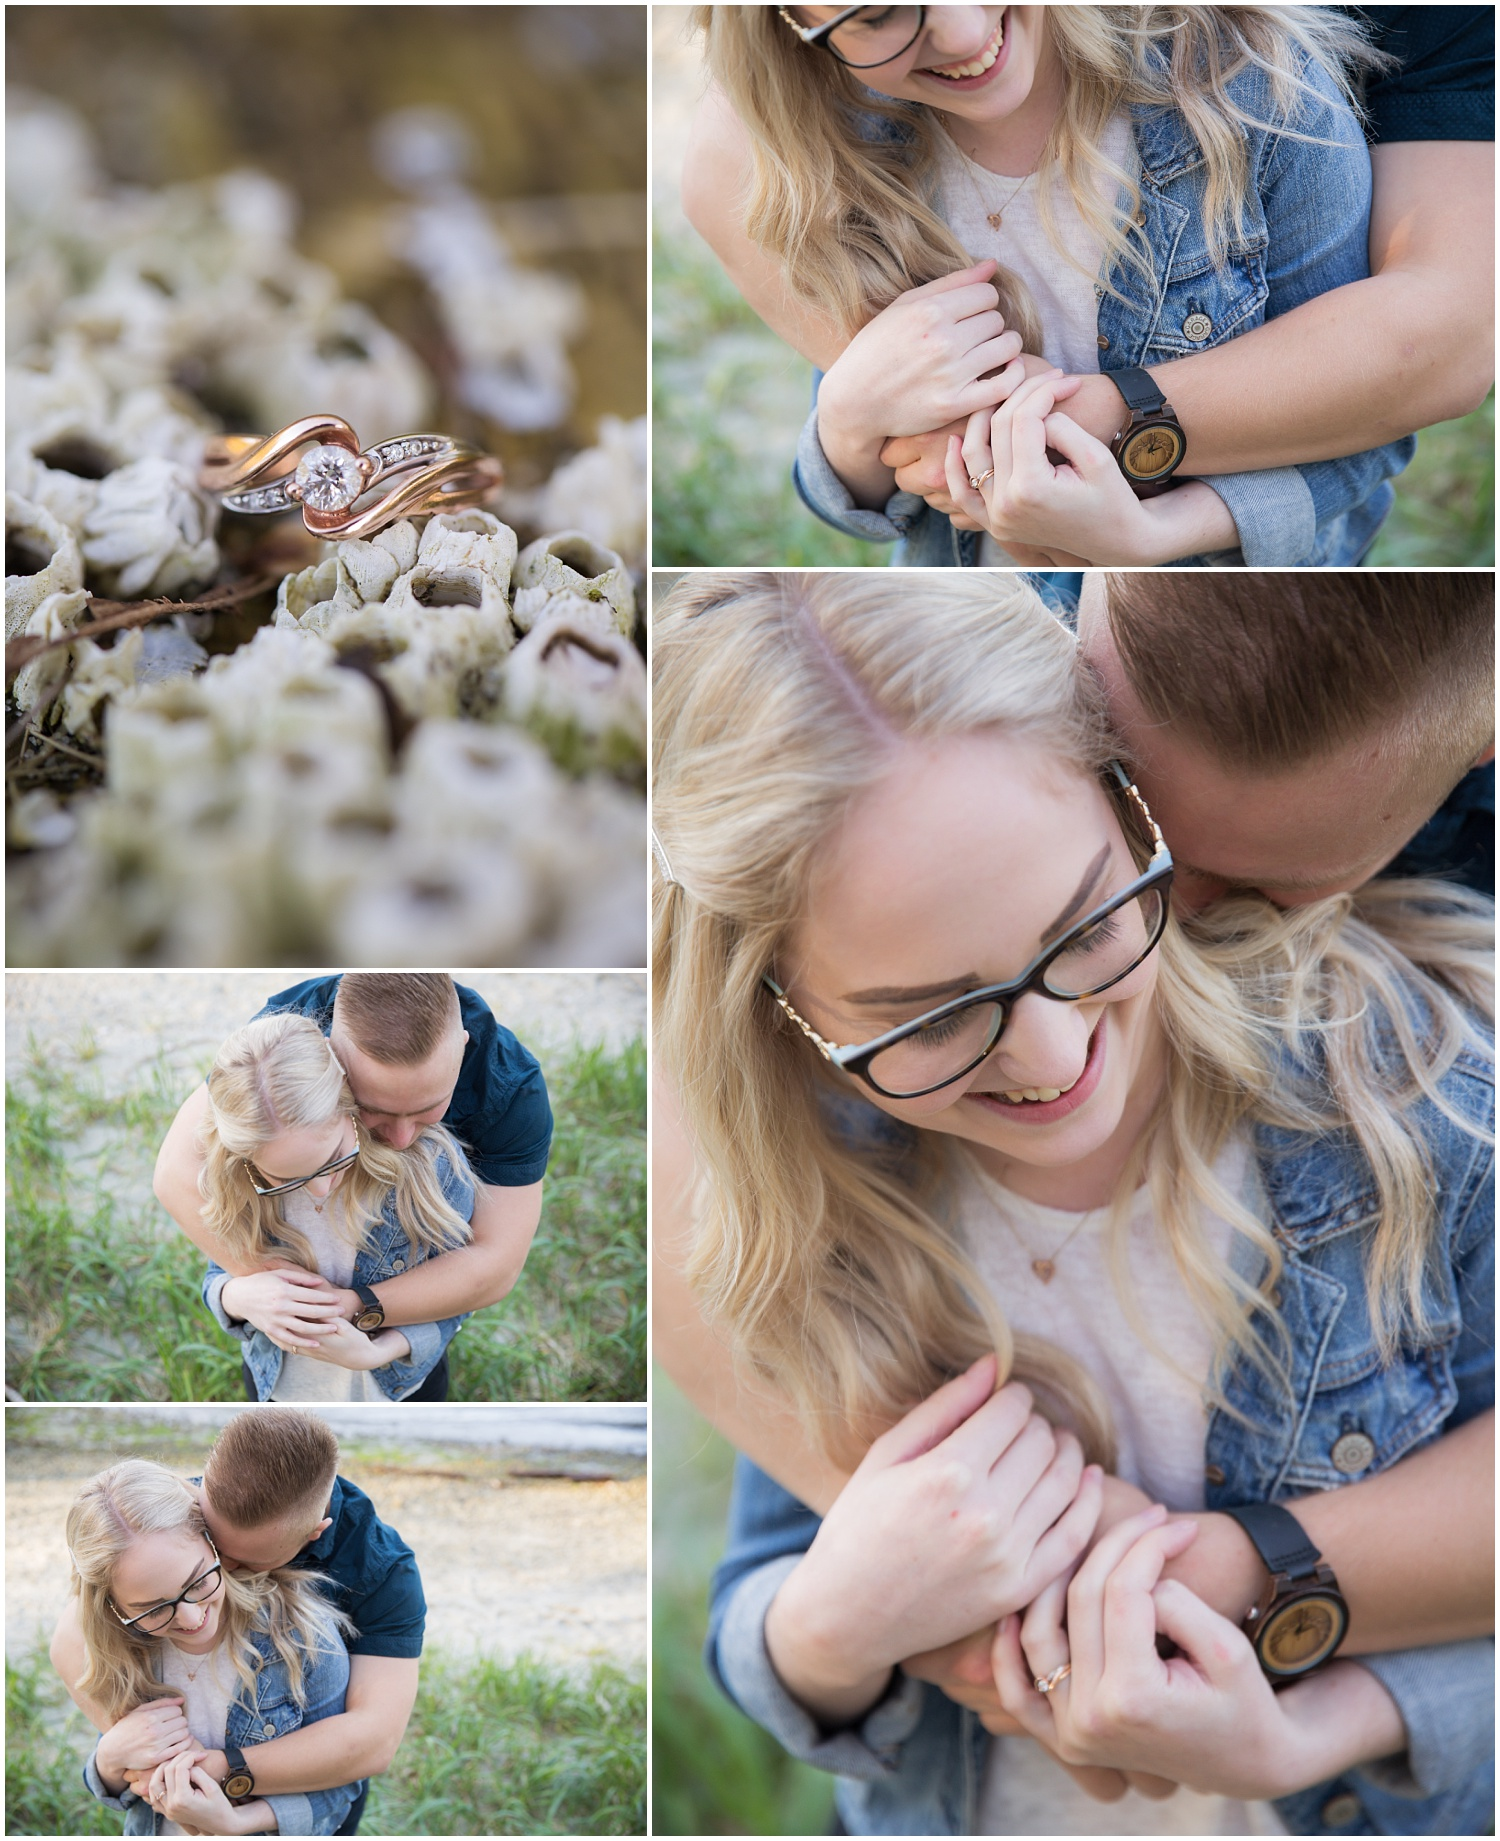 Amazing Day Photography - Barnet Marine Park Engagement Session - Burnaby Engagement Photographer - Langley Engagement Photographer (3).jpg